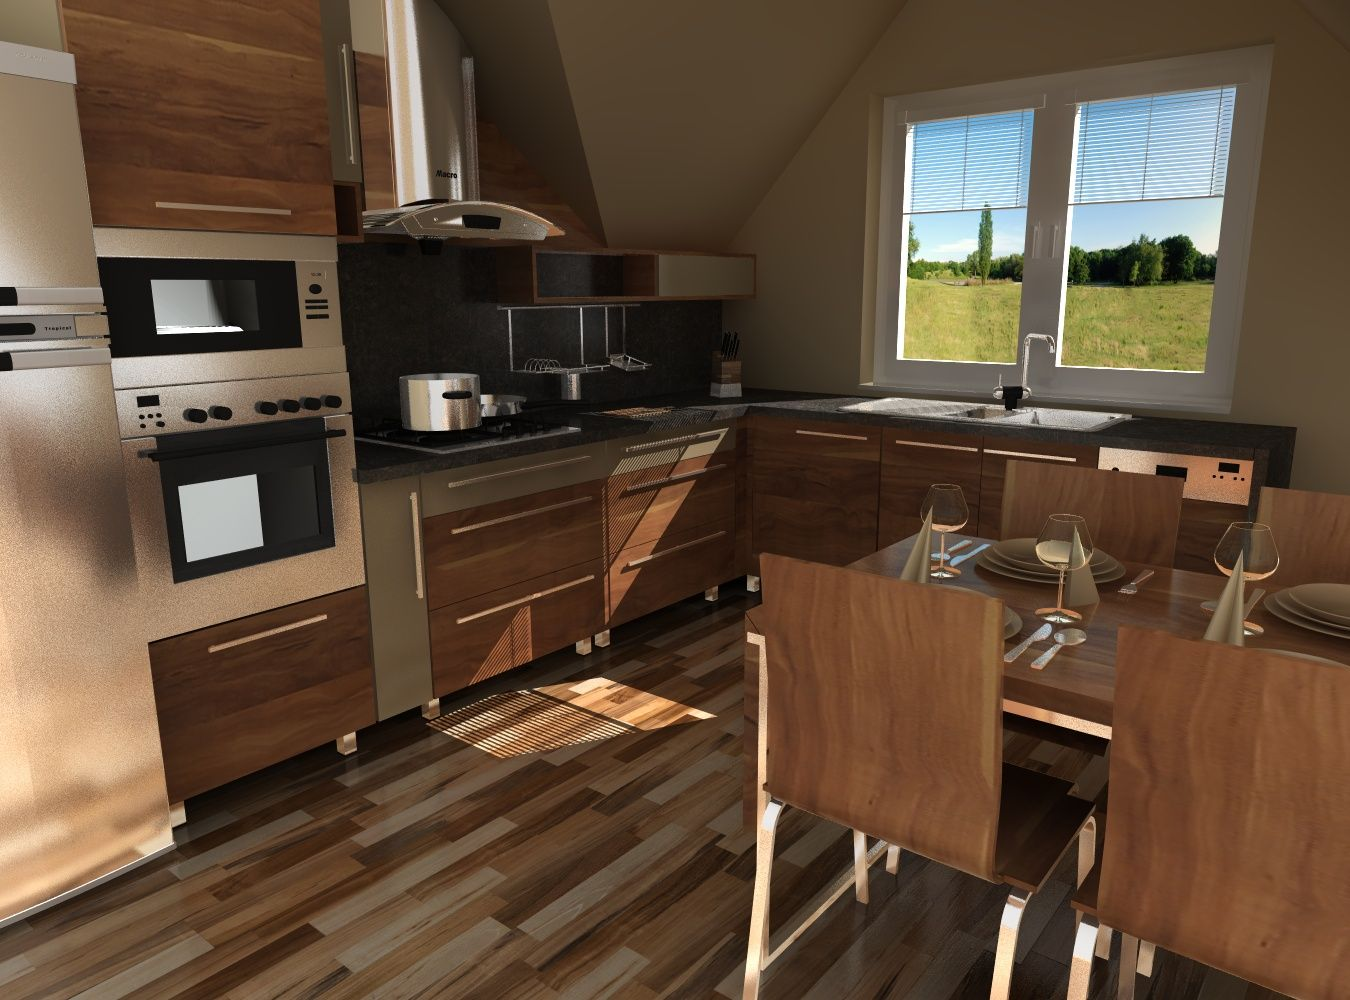 Kitchen 3d Model Rendering Created In Turbocad Professional Cad Software Turbocad Cad